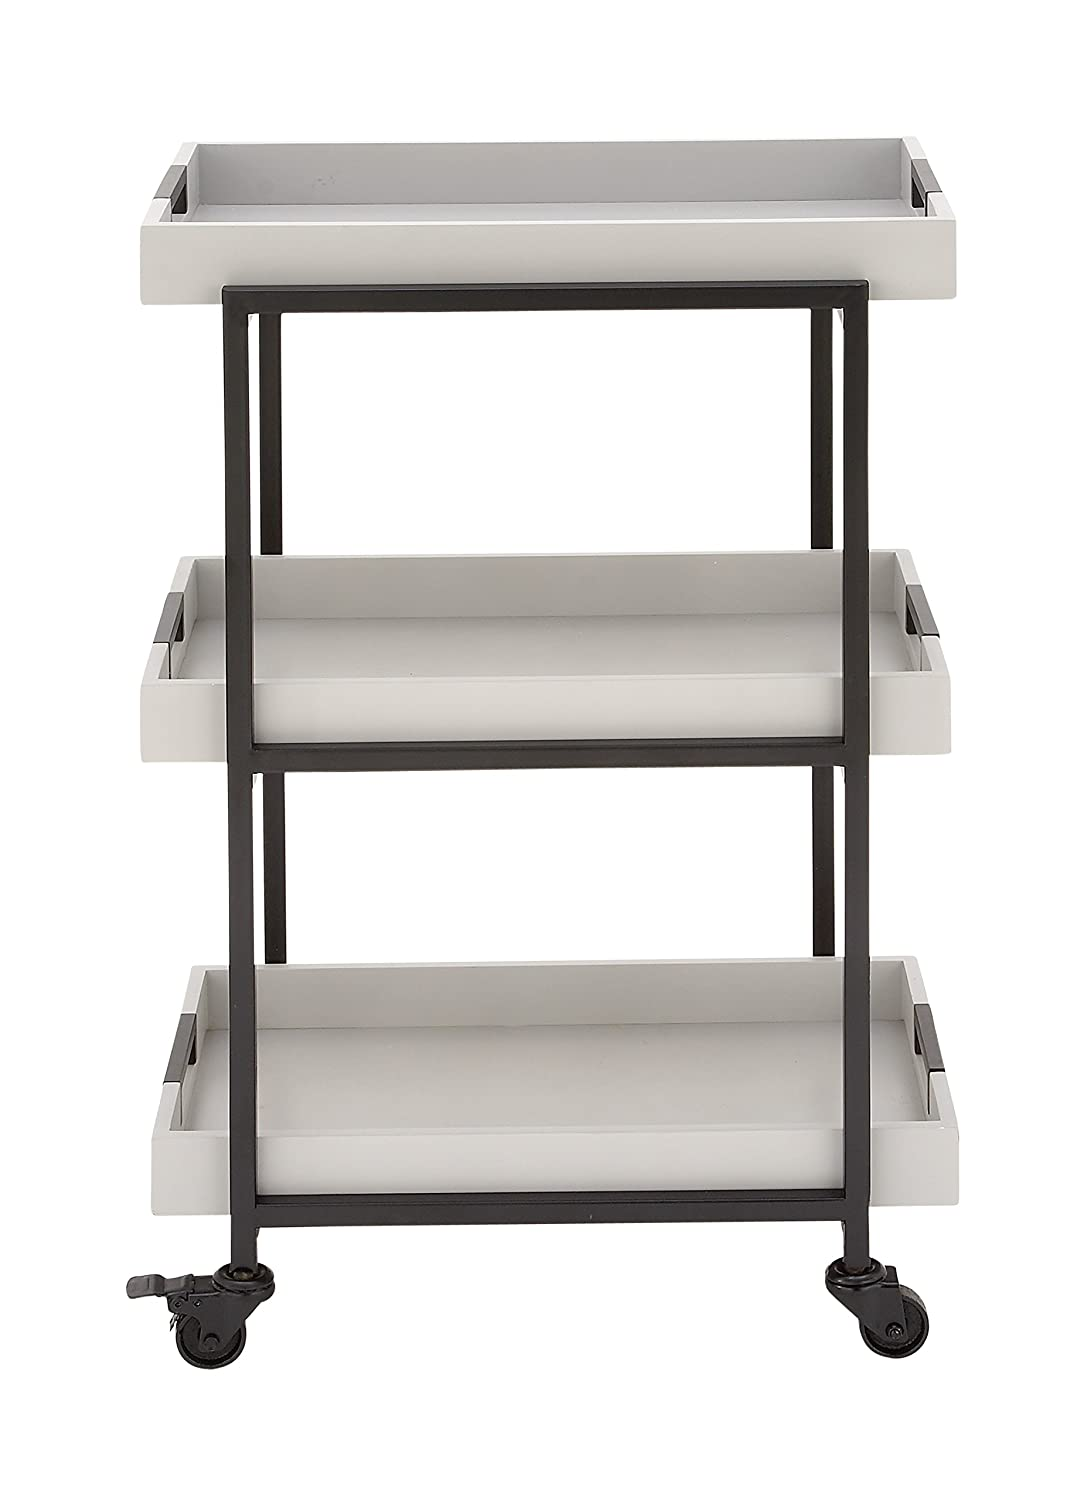 Deco 79 85460 85460 22' X 34' Metal Wood Tray Cart,  White/Black Benzara